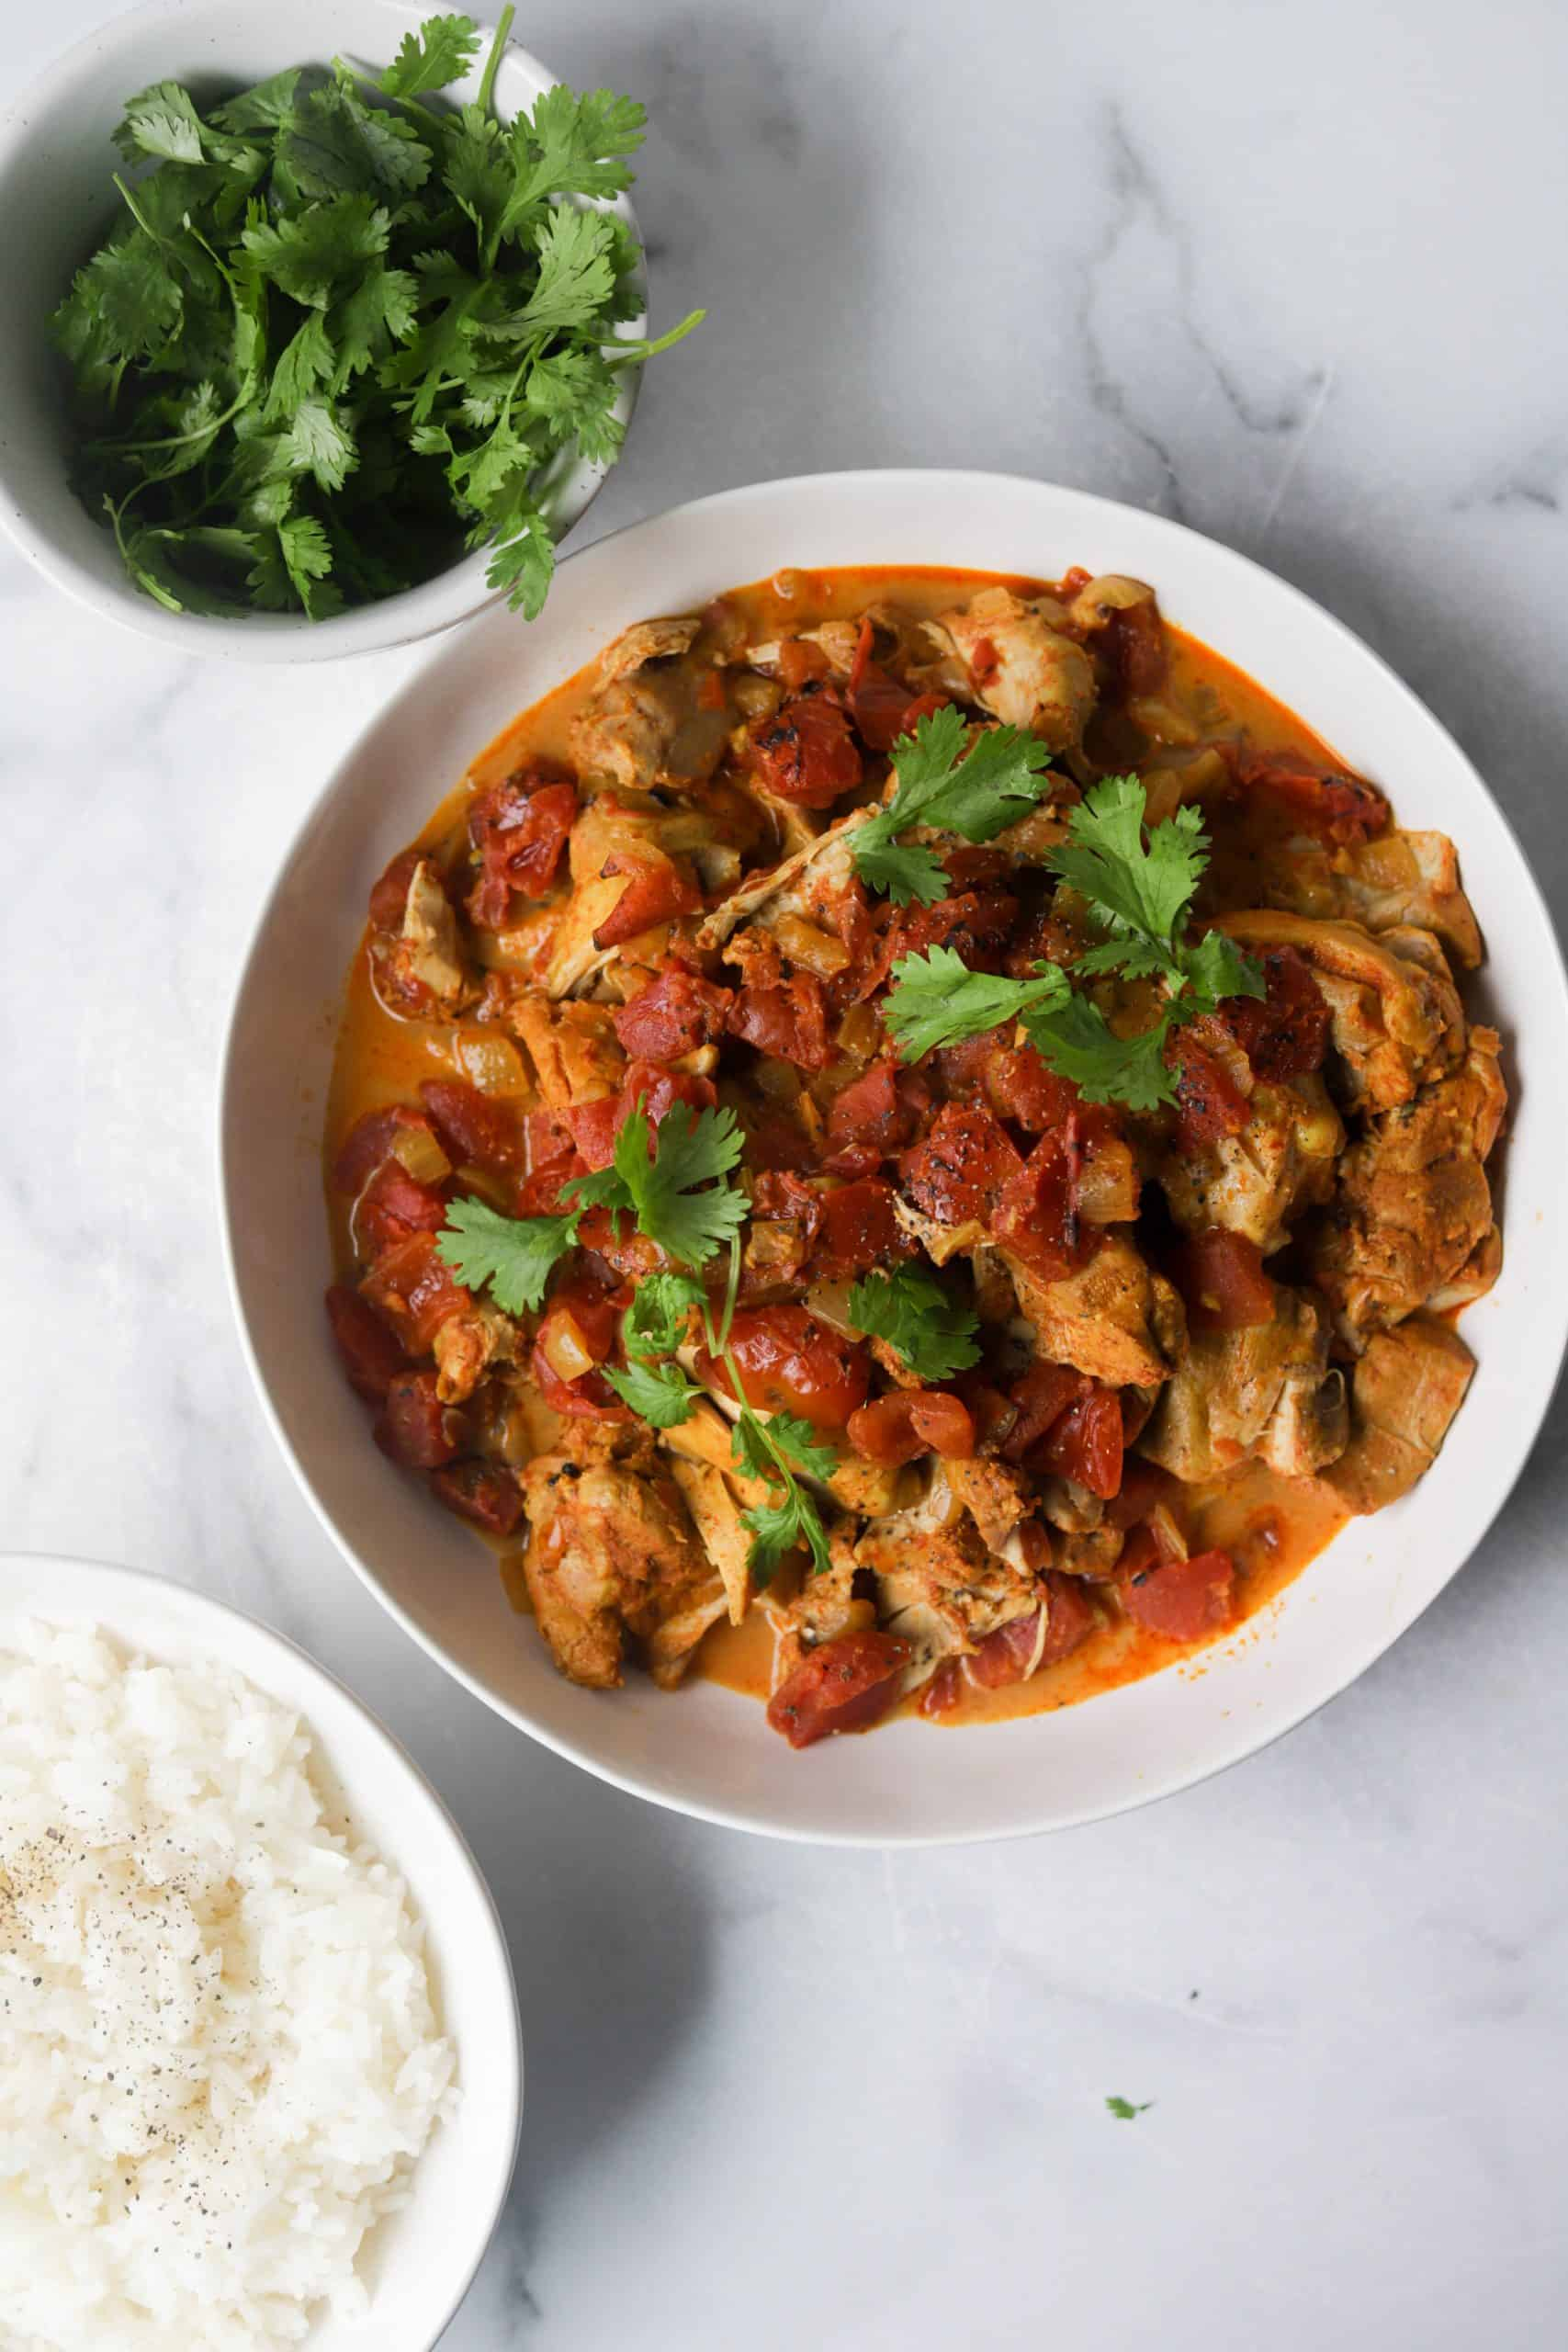 A large white bowl filled with chicken vindaloo and a side bowl of Jasmine rice and cilantro.